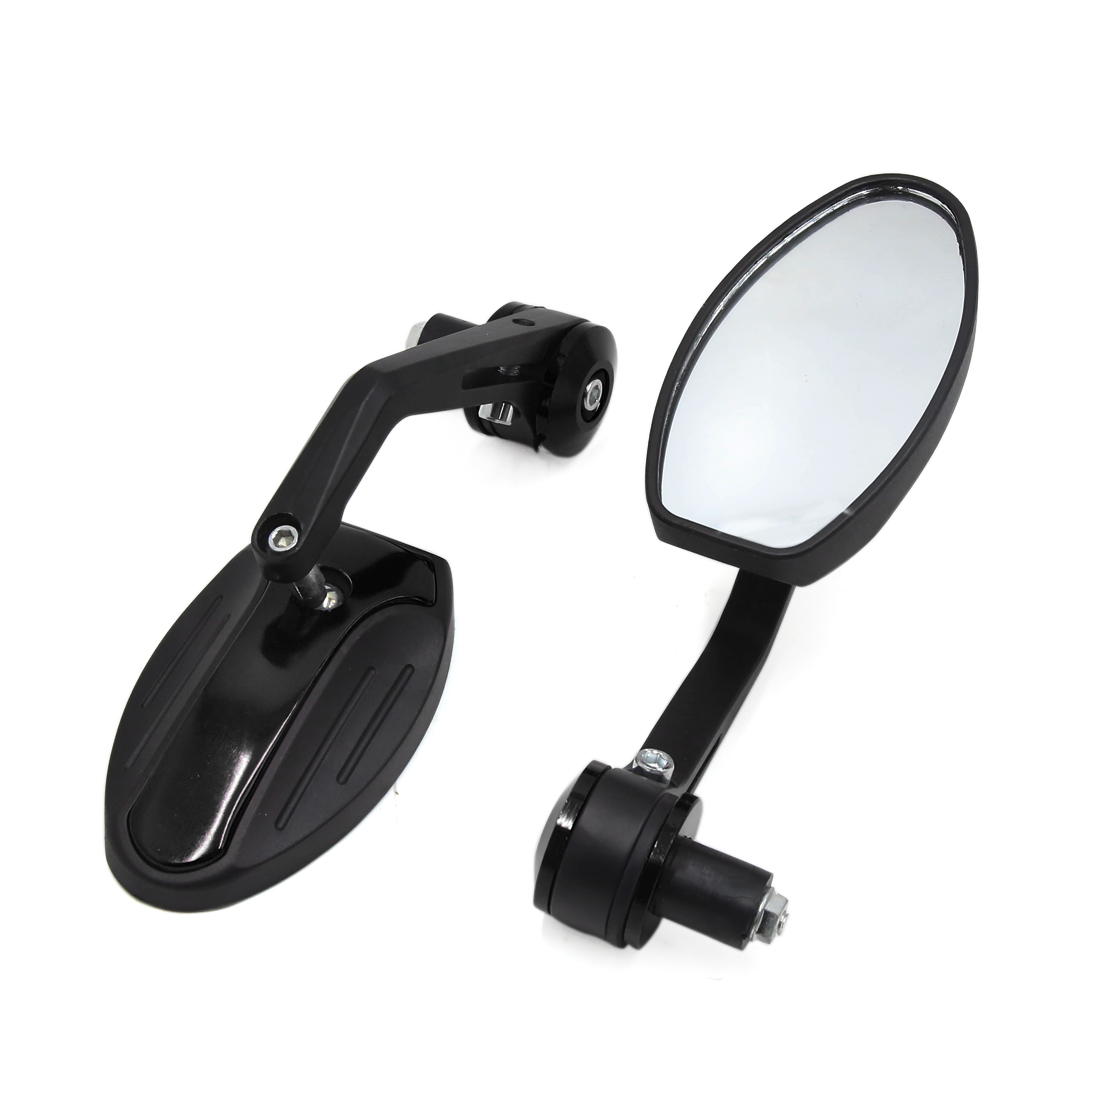 2 Pcs 6mm Thread Dia Metal Handle Adjustable Motorcycle Rearview Side Mirrors Black